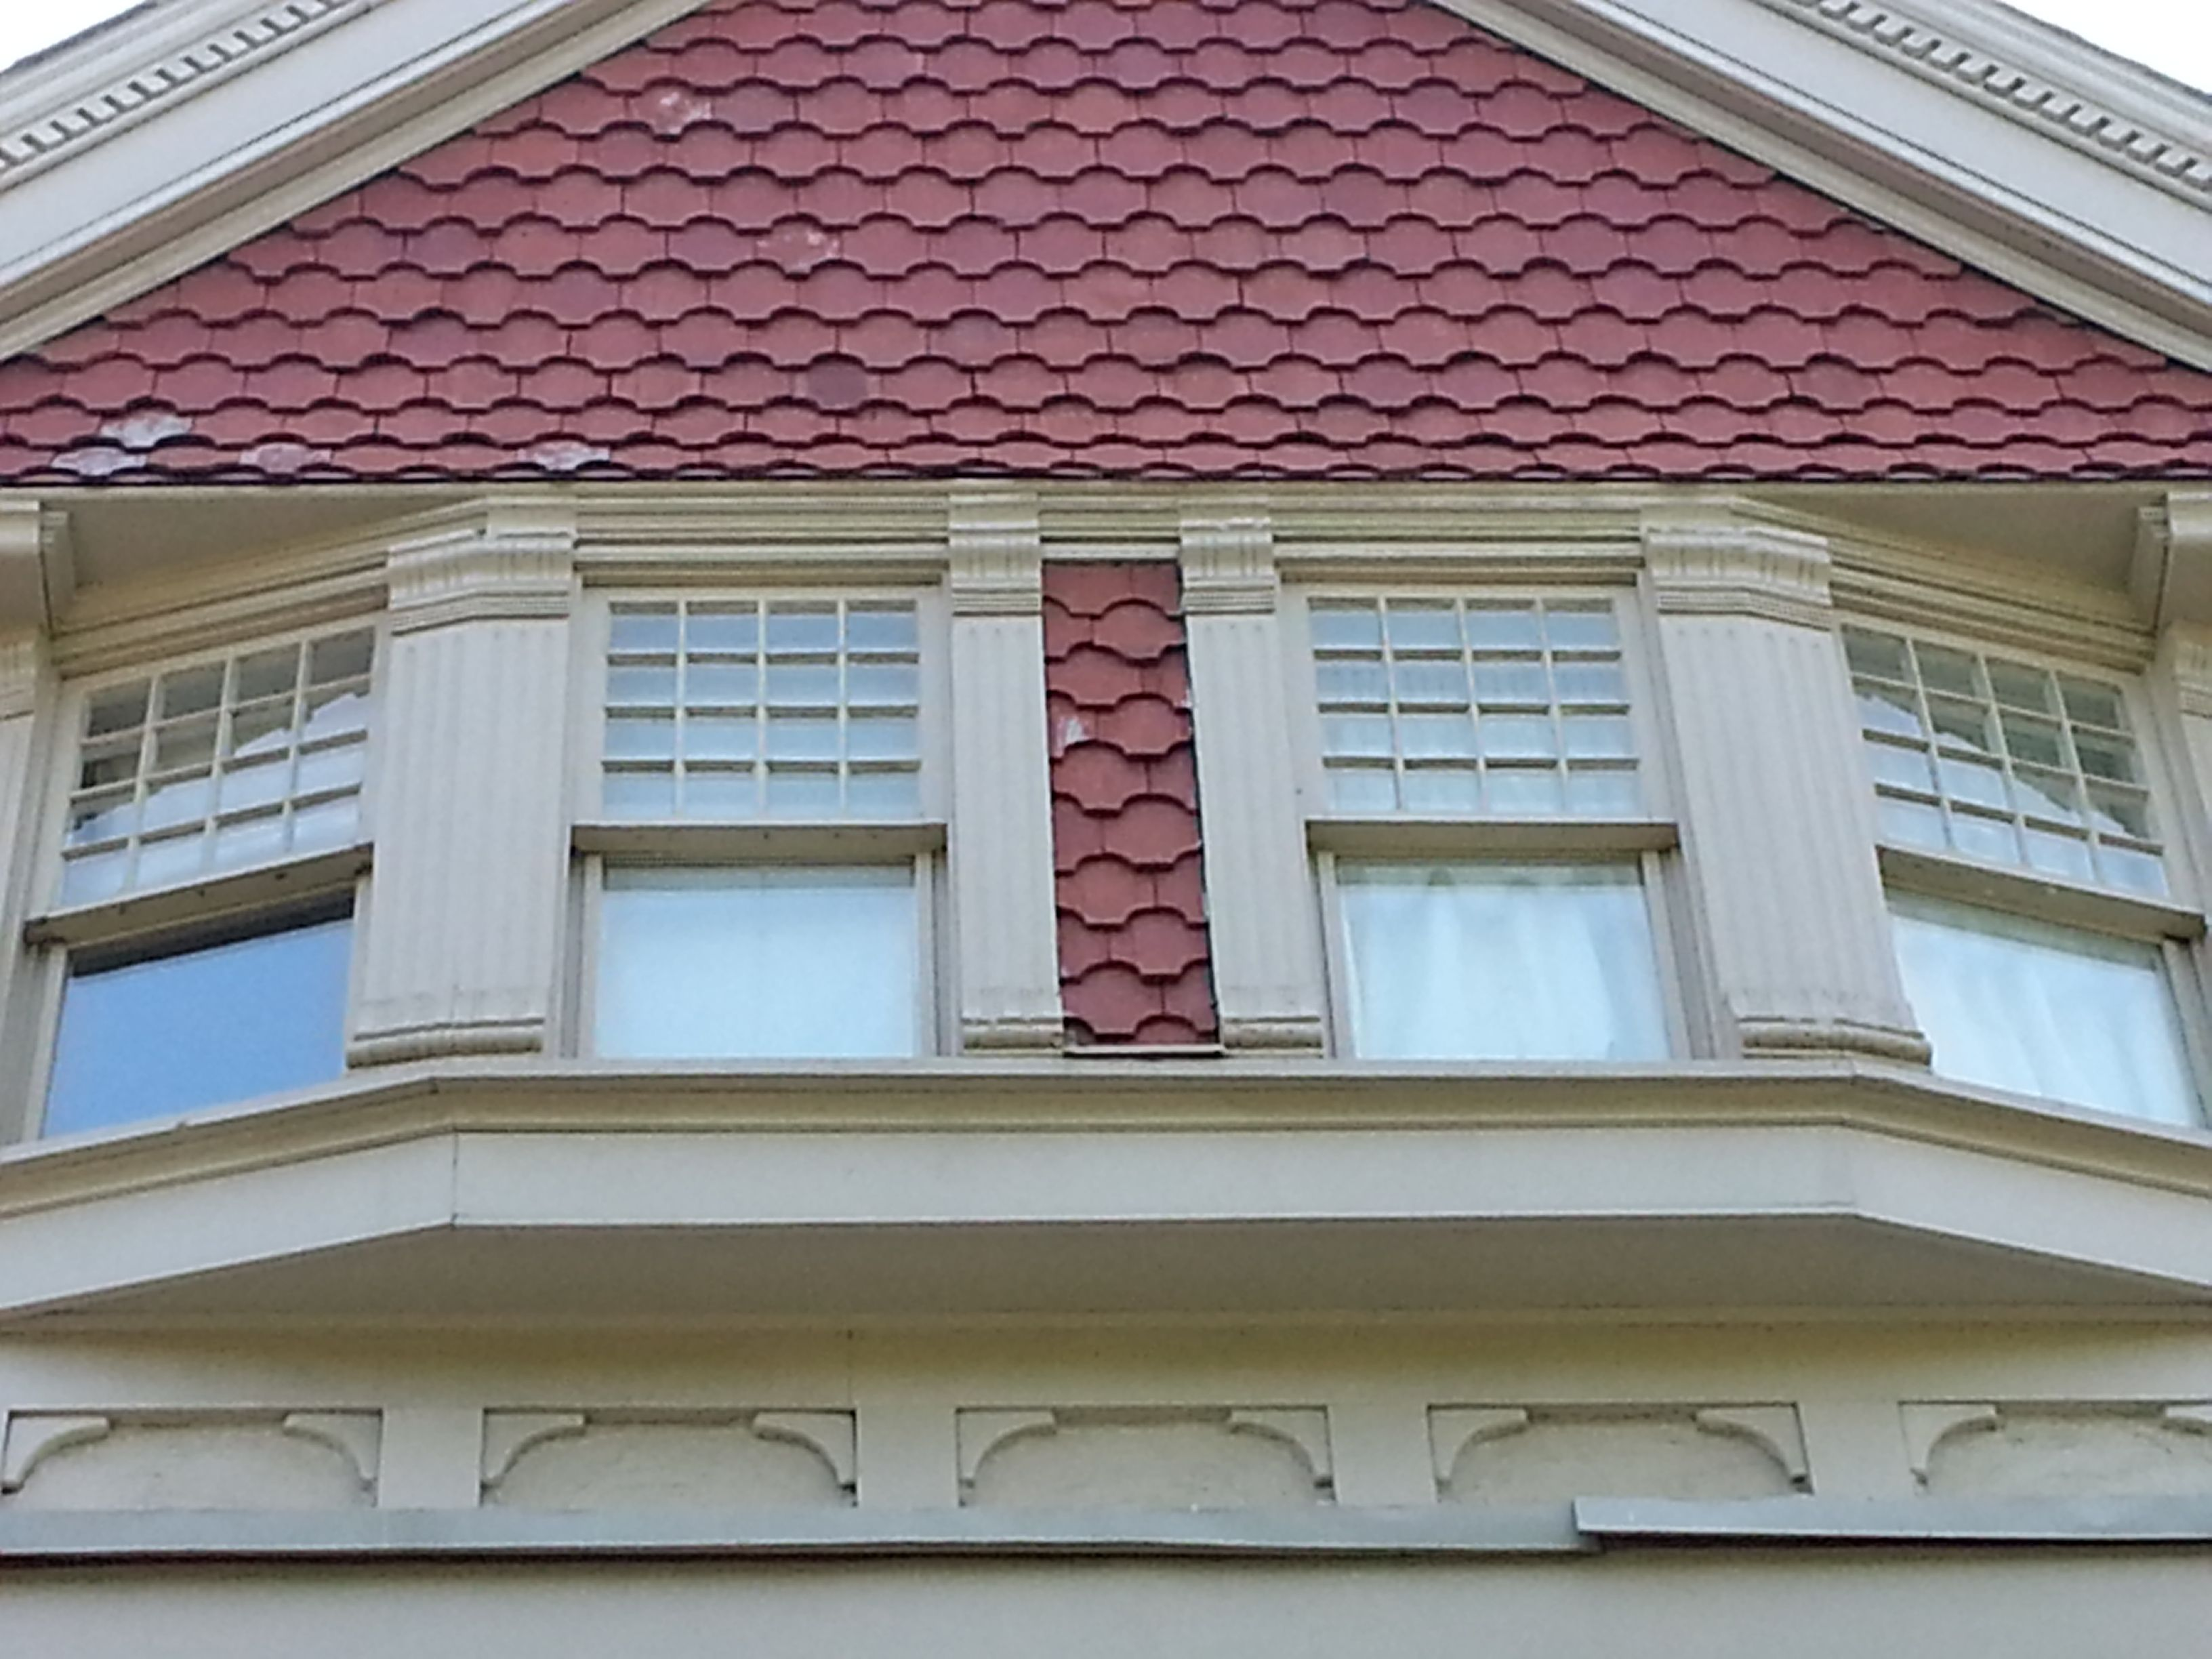 Clay Tile and Paint | Brick Houses Toronto | Pinterest | Clay tiles